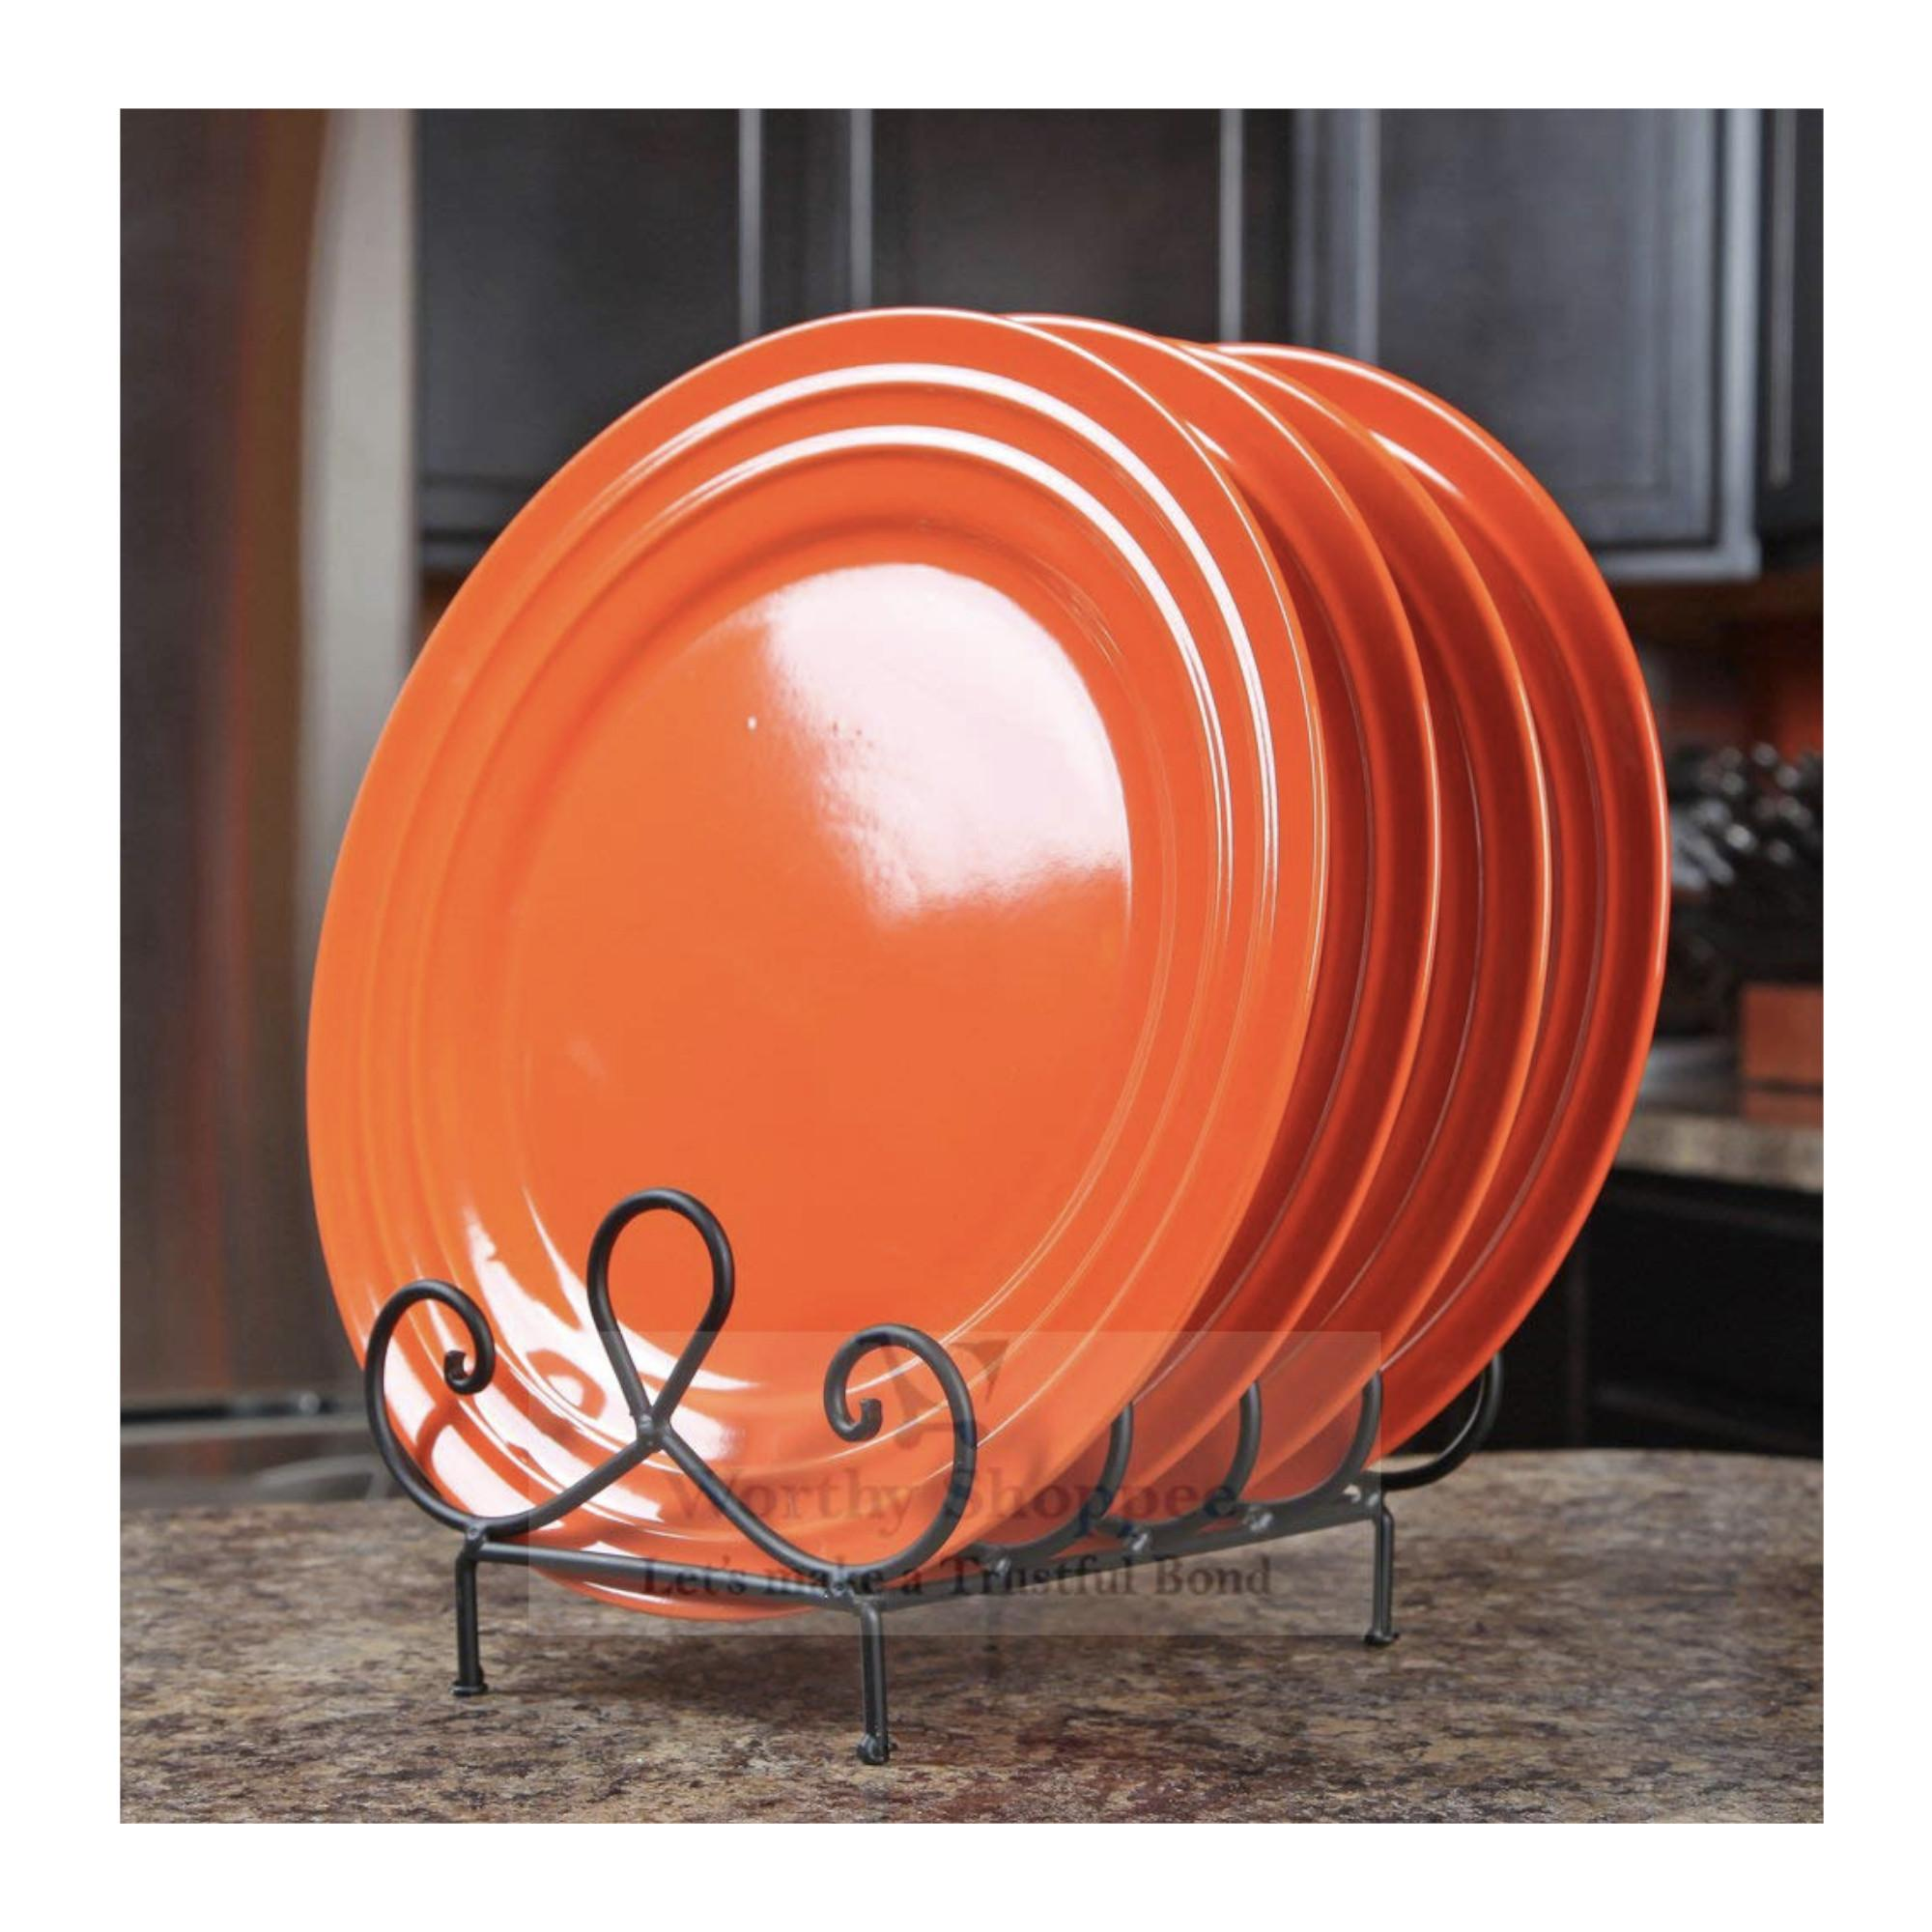 Luxury Stylish 4 Place Plate Holder Plate Stand Dish Rack Dish Holder